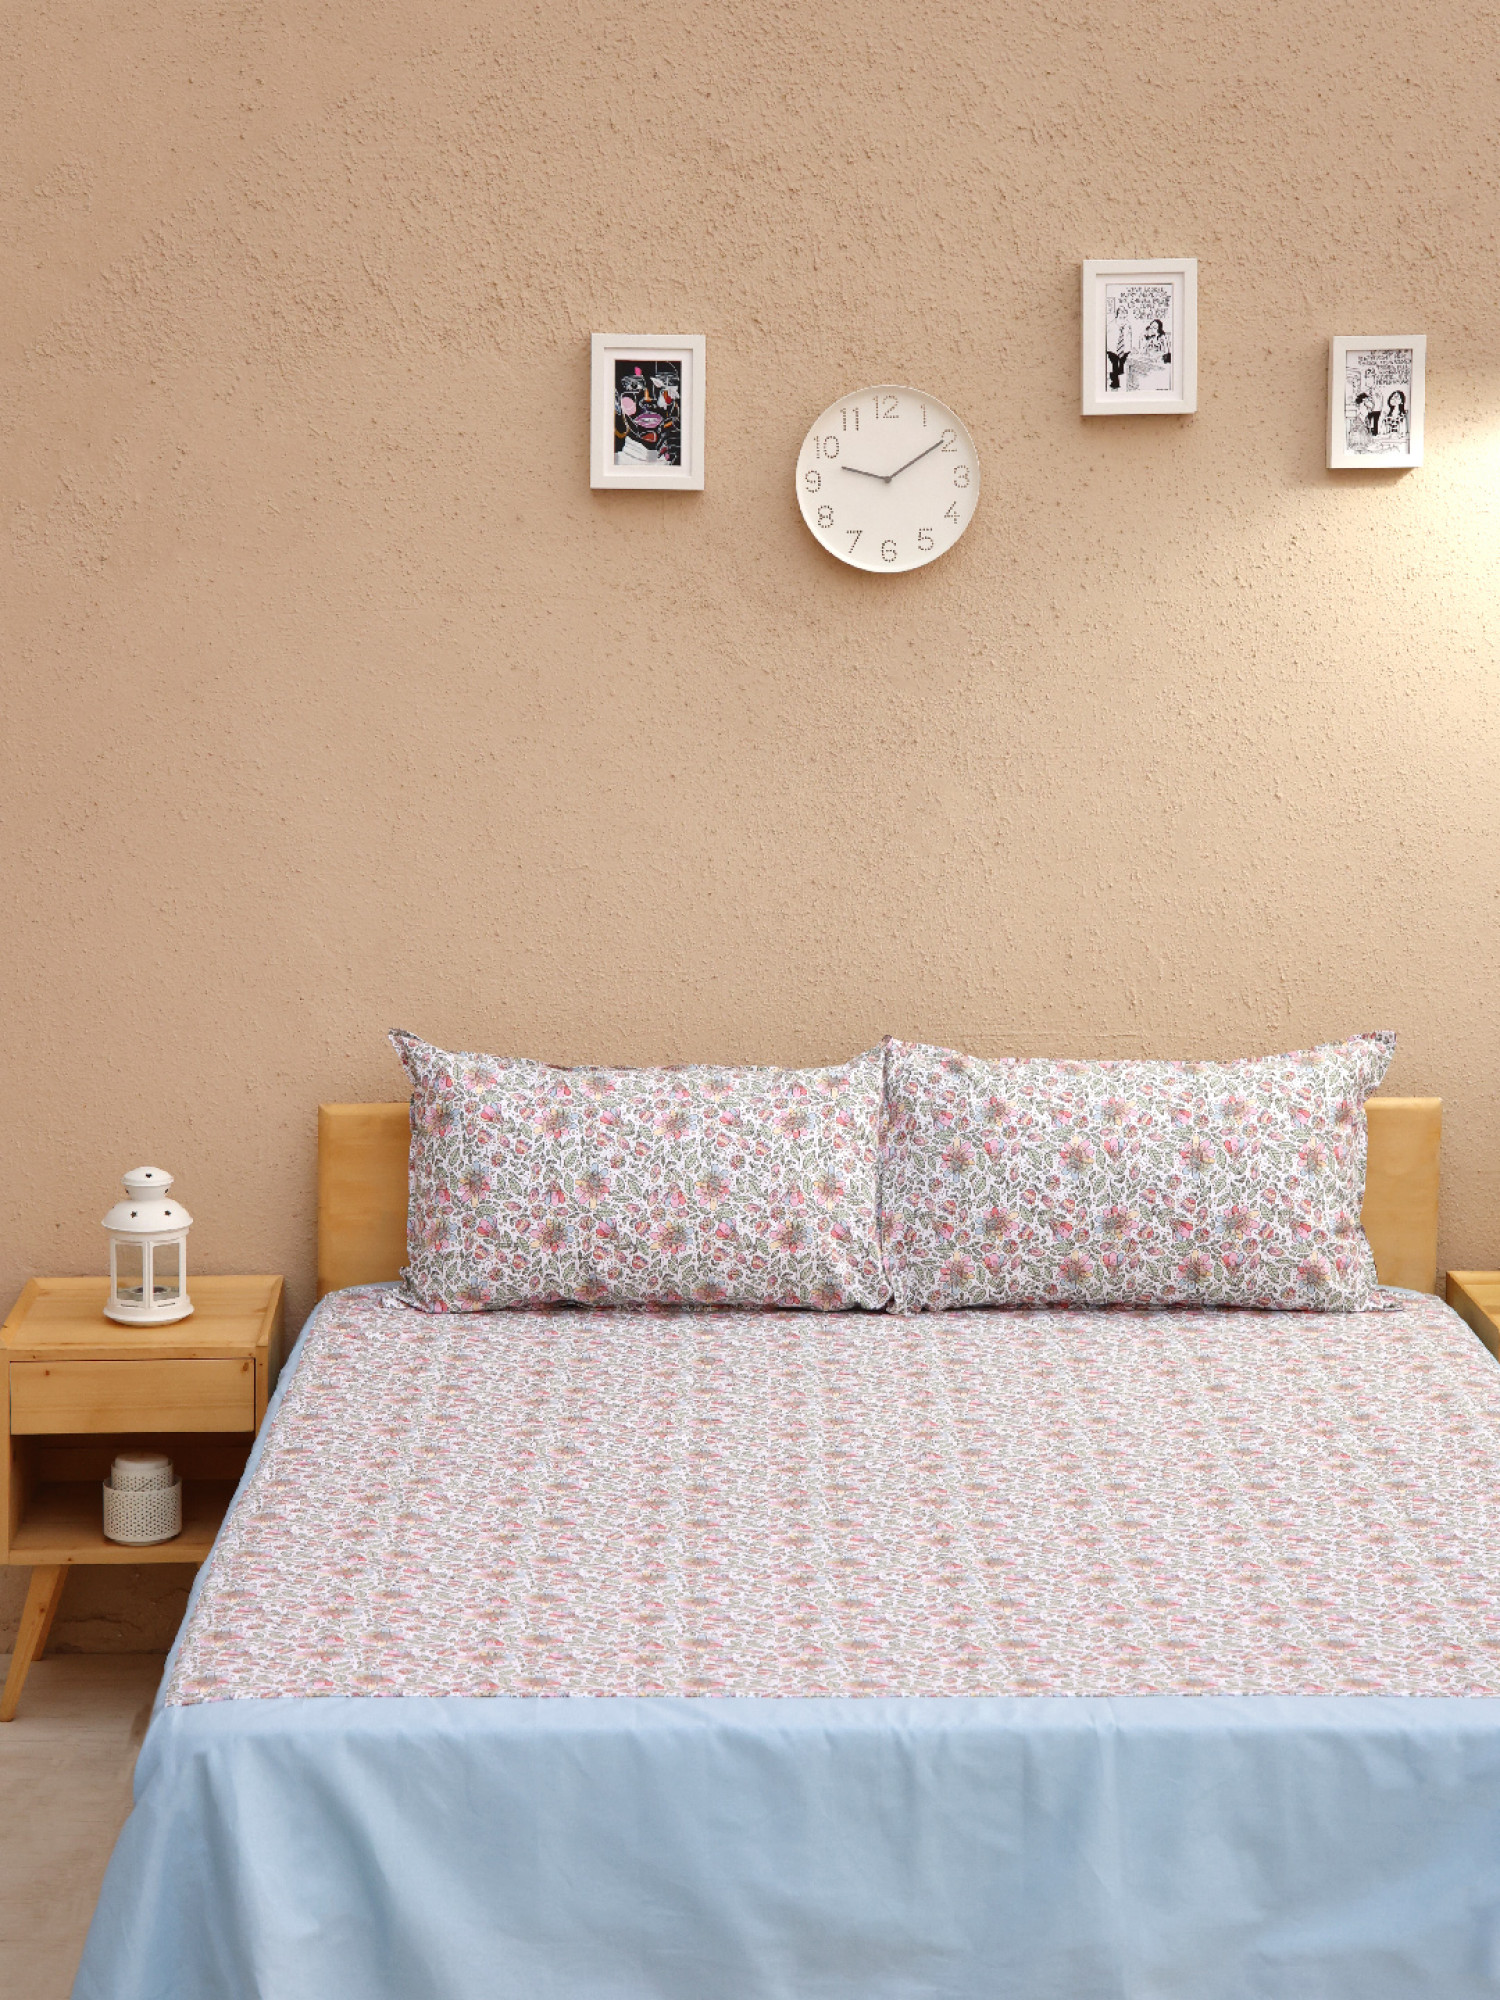 2 in 1 Bed Cover